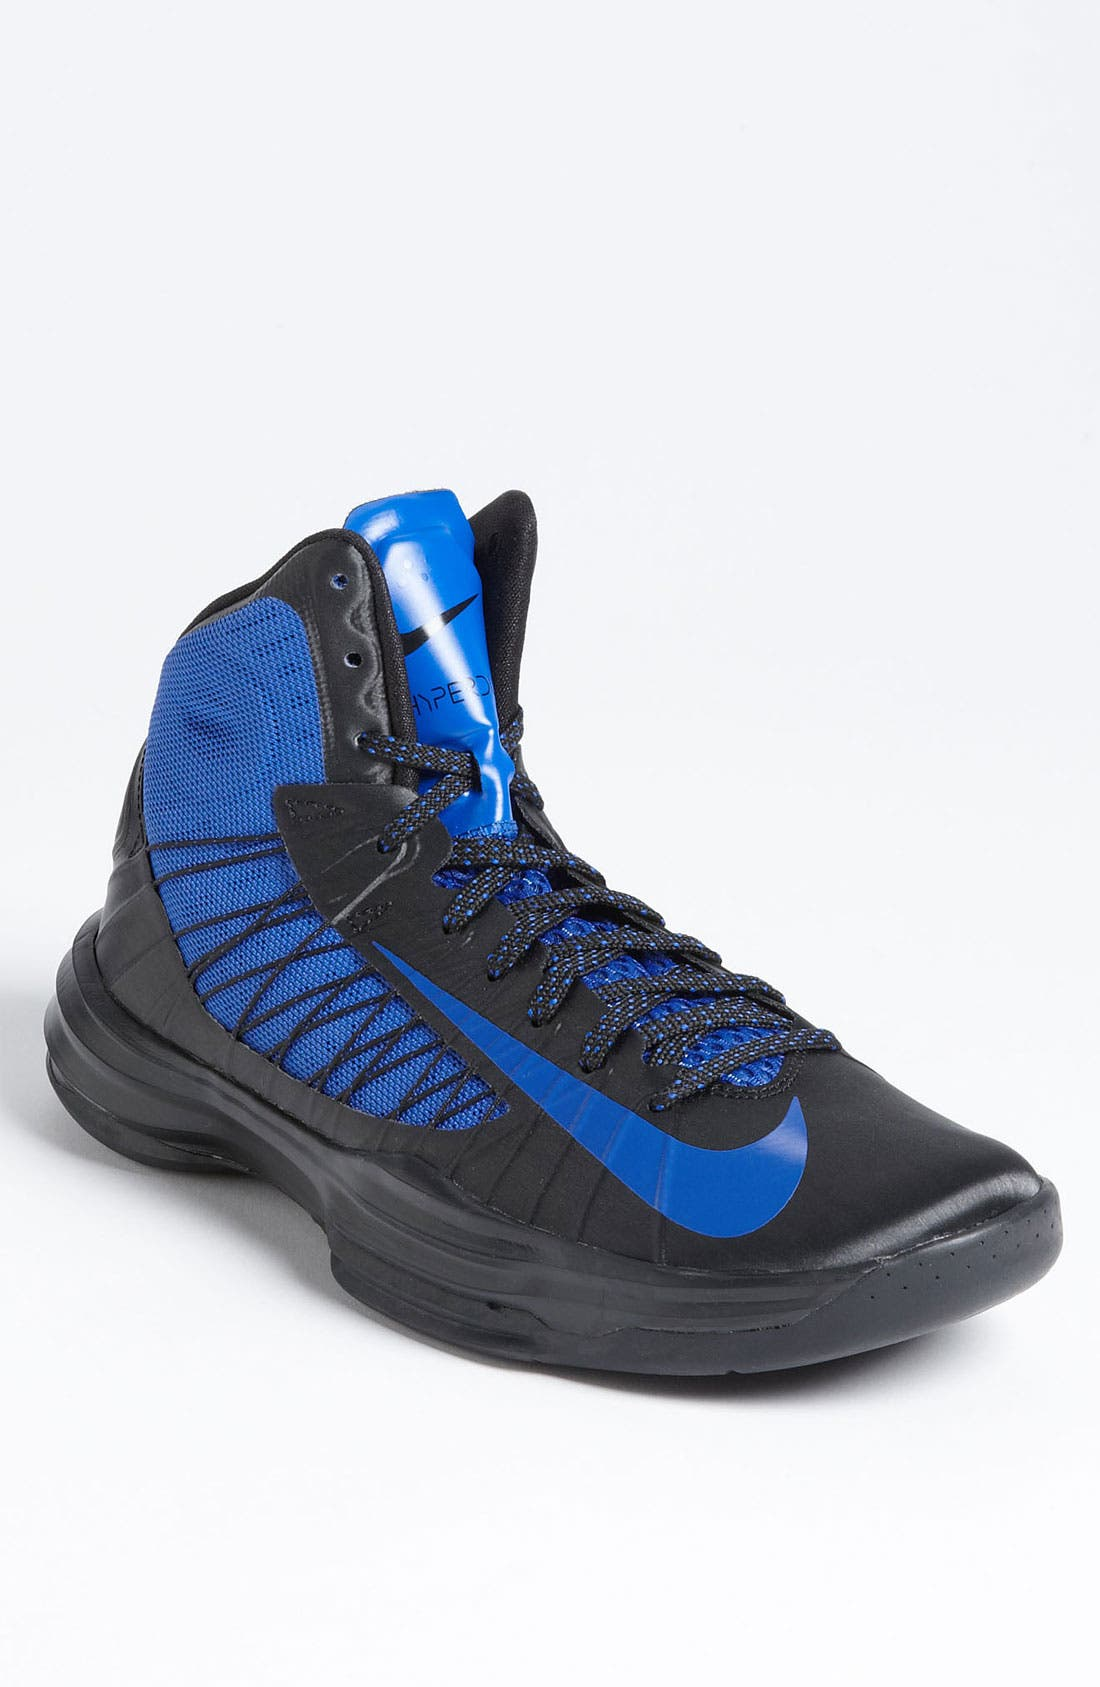 Alternate Image 1 Selected - Nike 'Hyperdunk' Basketball Shoe (Men) (Online Only)